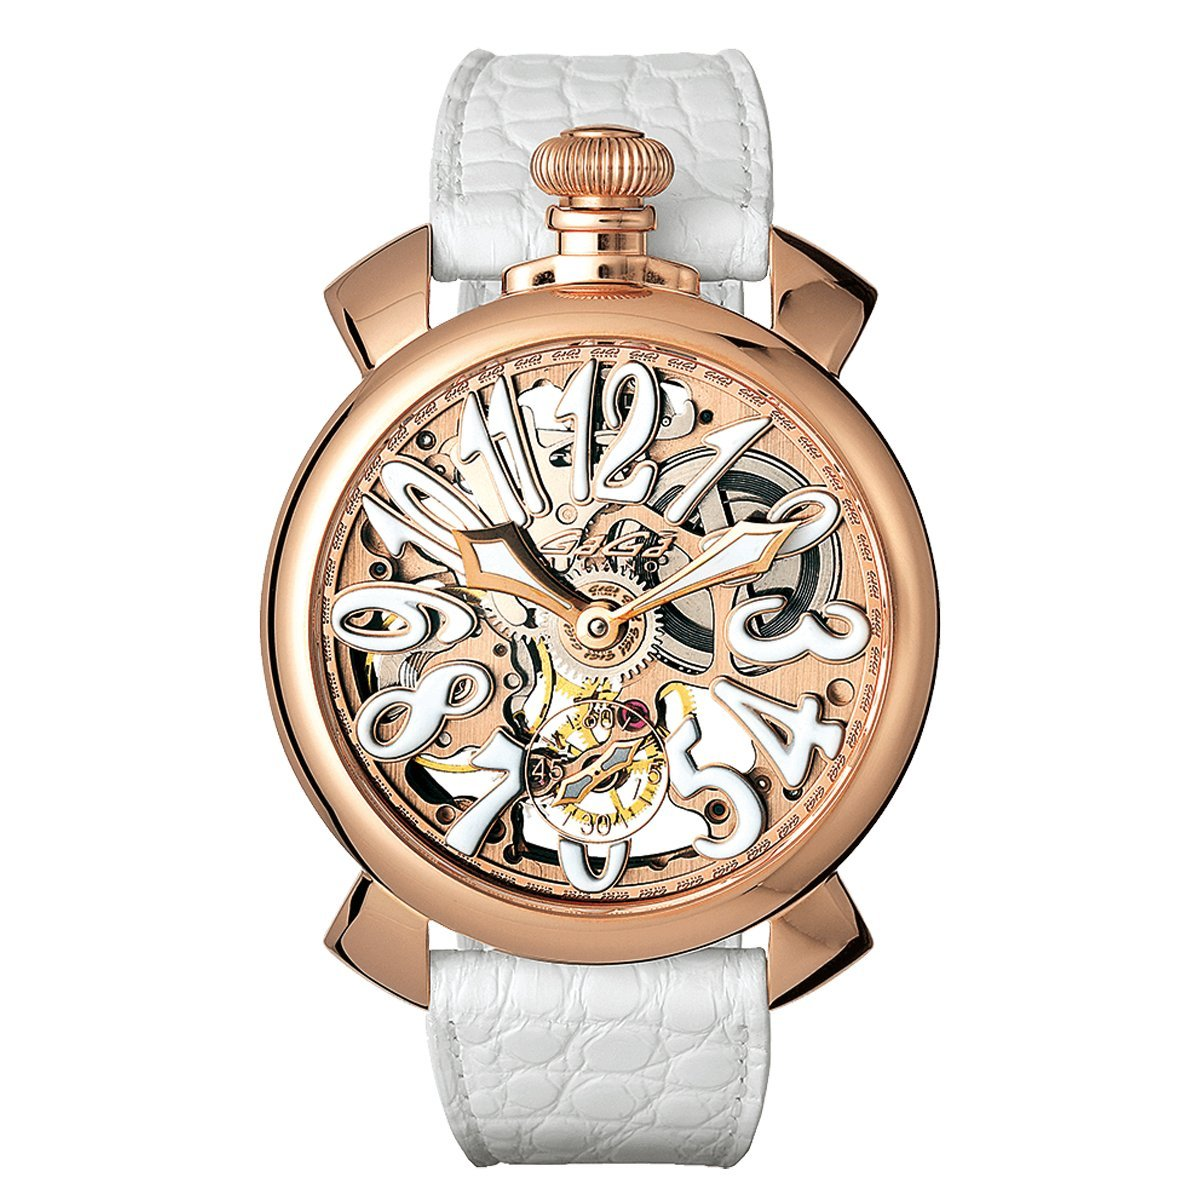 GaGà Milano Skeleton 48MM Rose Gold - Watches & Crystals